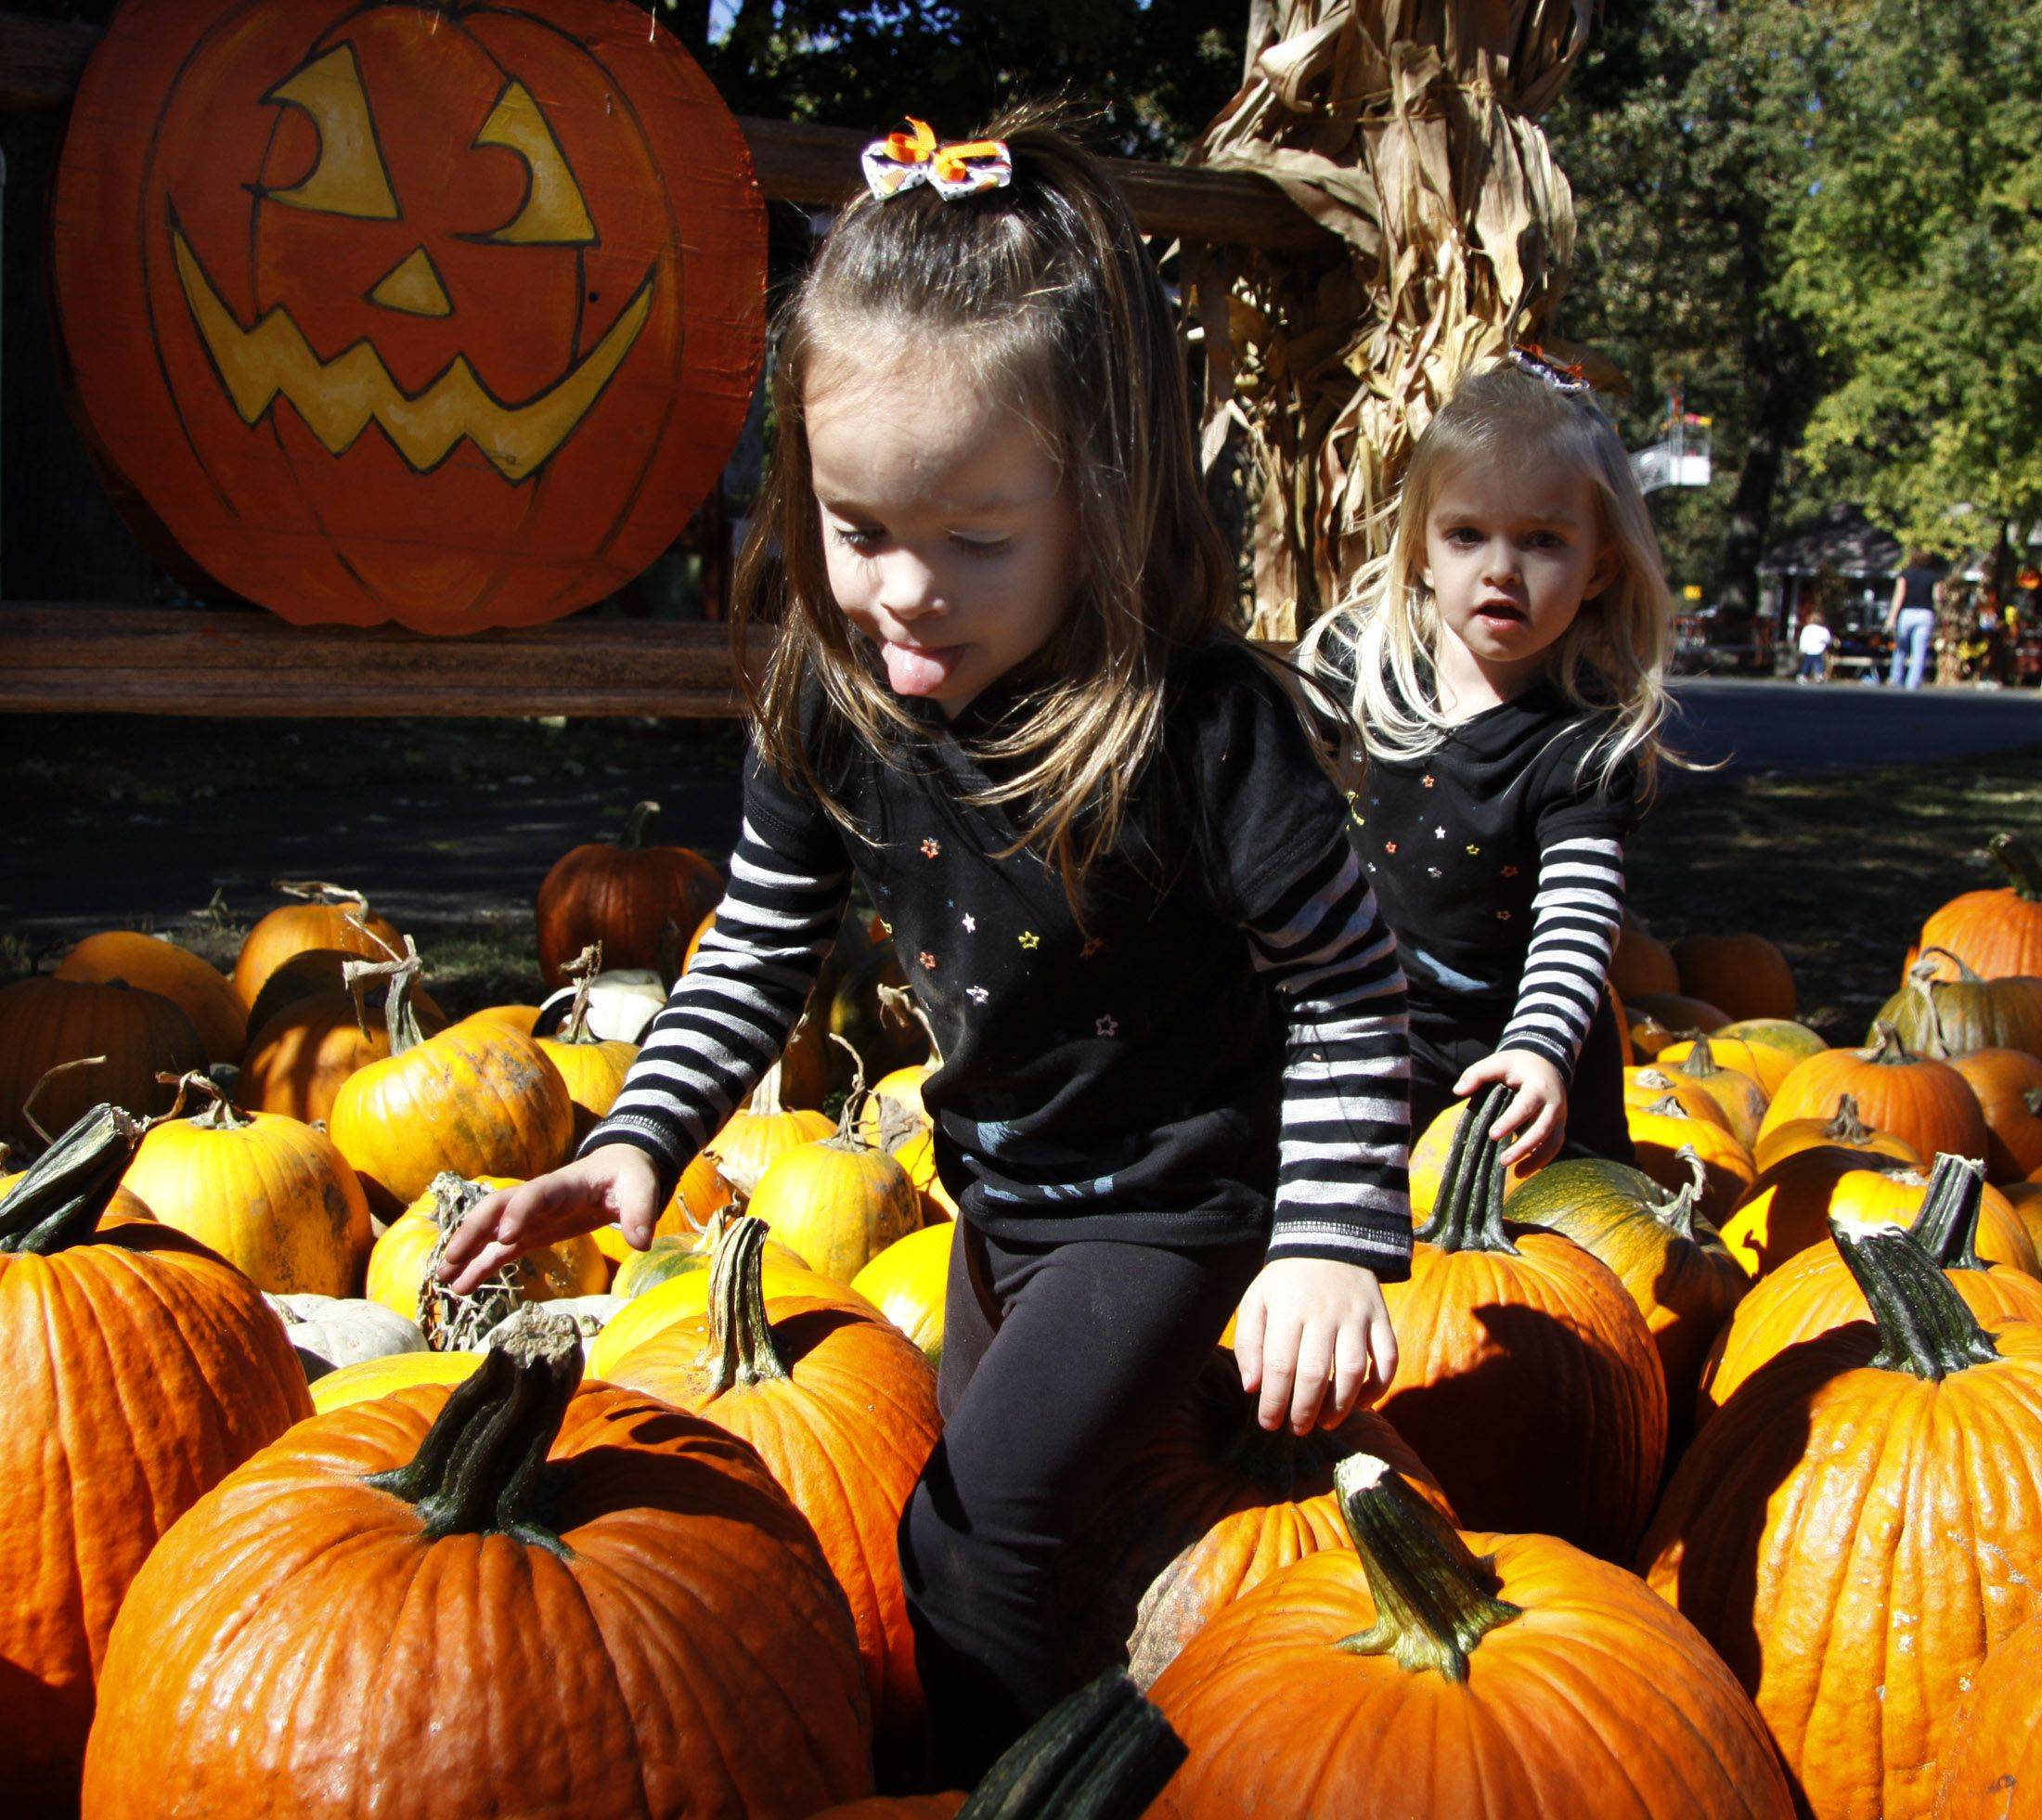 Sonny Acres Farm in West Chicago is in full operation for Halloween with hay rides, haunted houses and pumpkins. Twins Juliana and Ava Neustadt, 3, of Oakbrook walk through one of the many patches of pumpkins on Thursday.